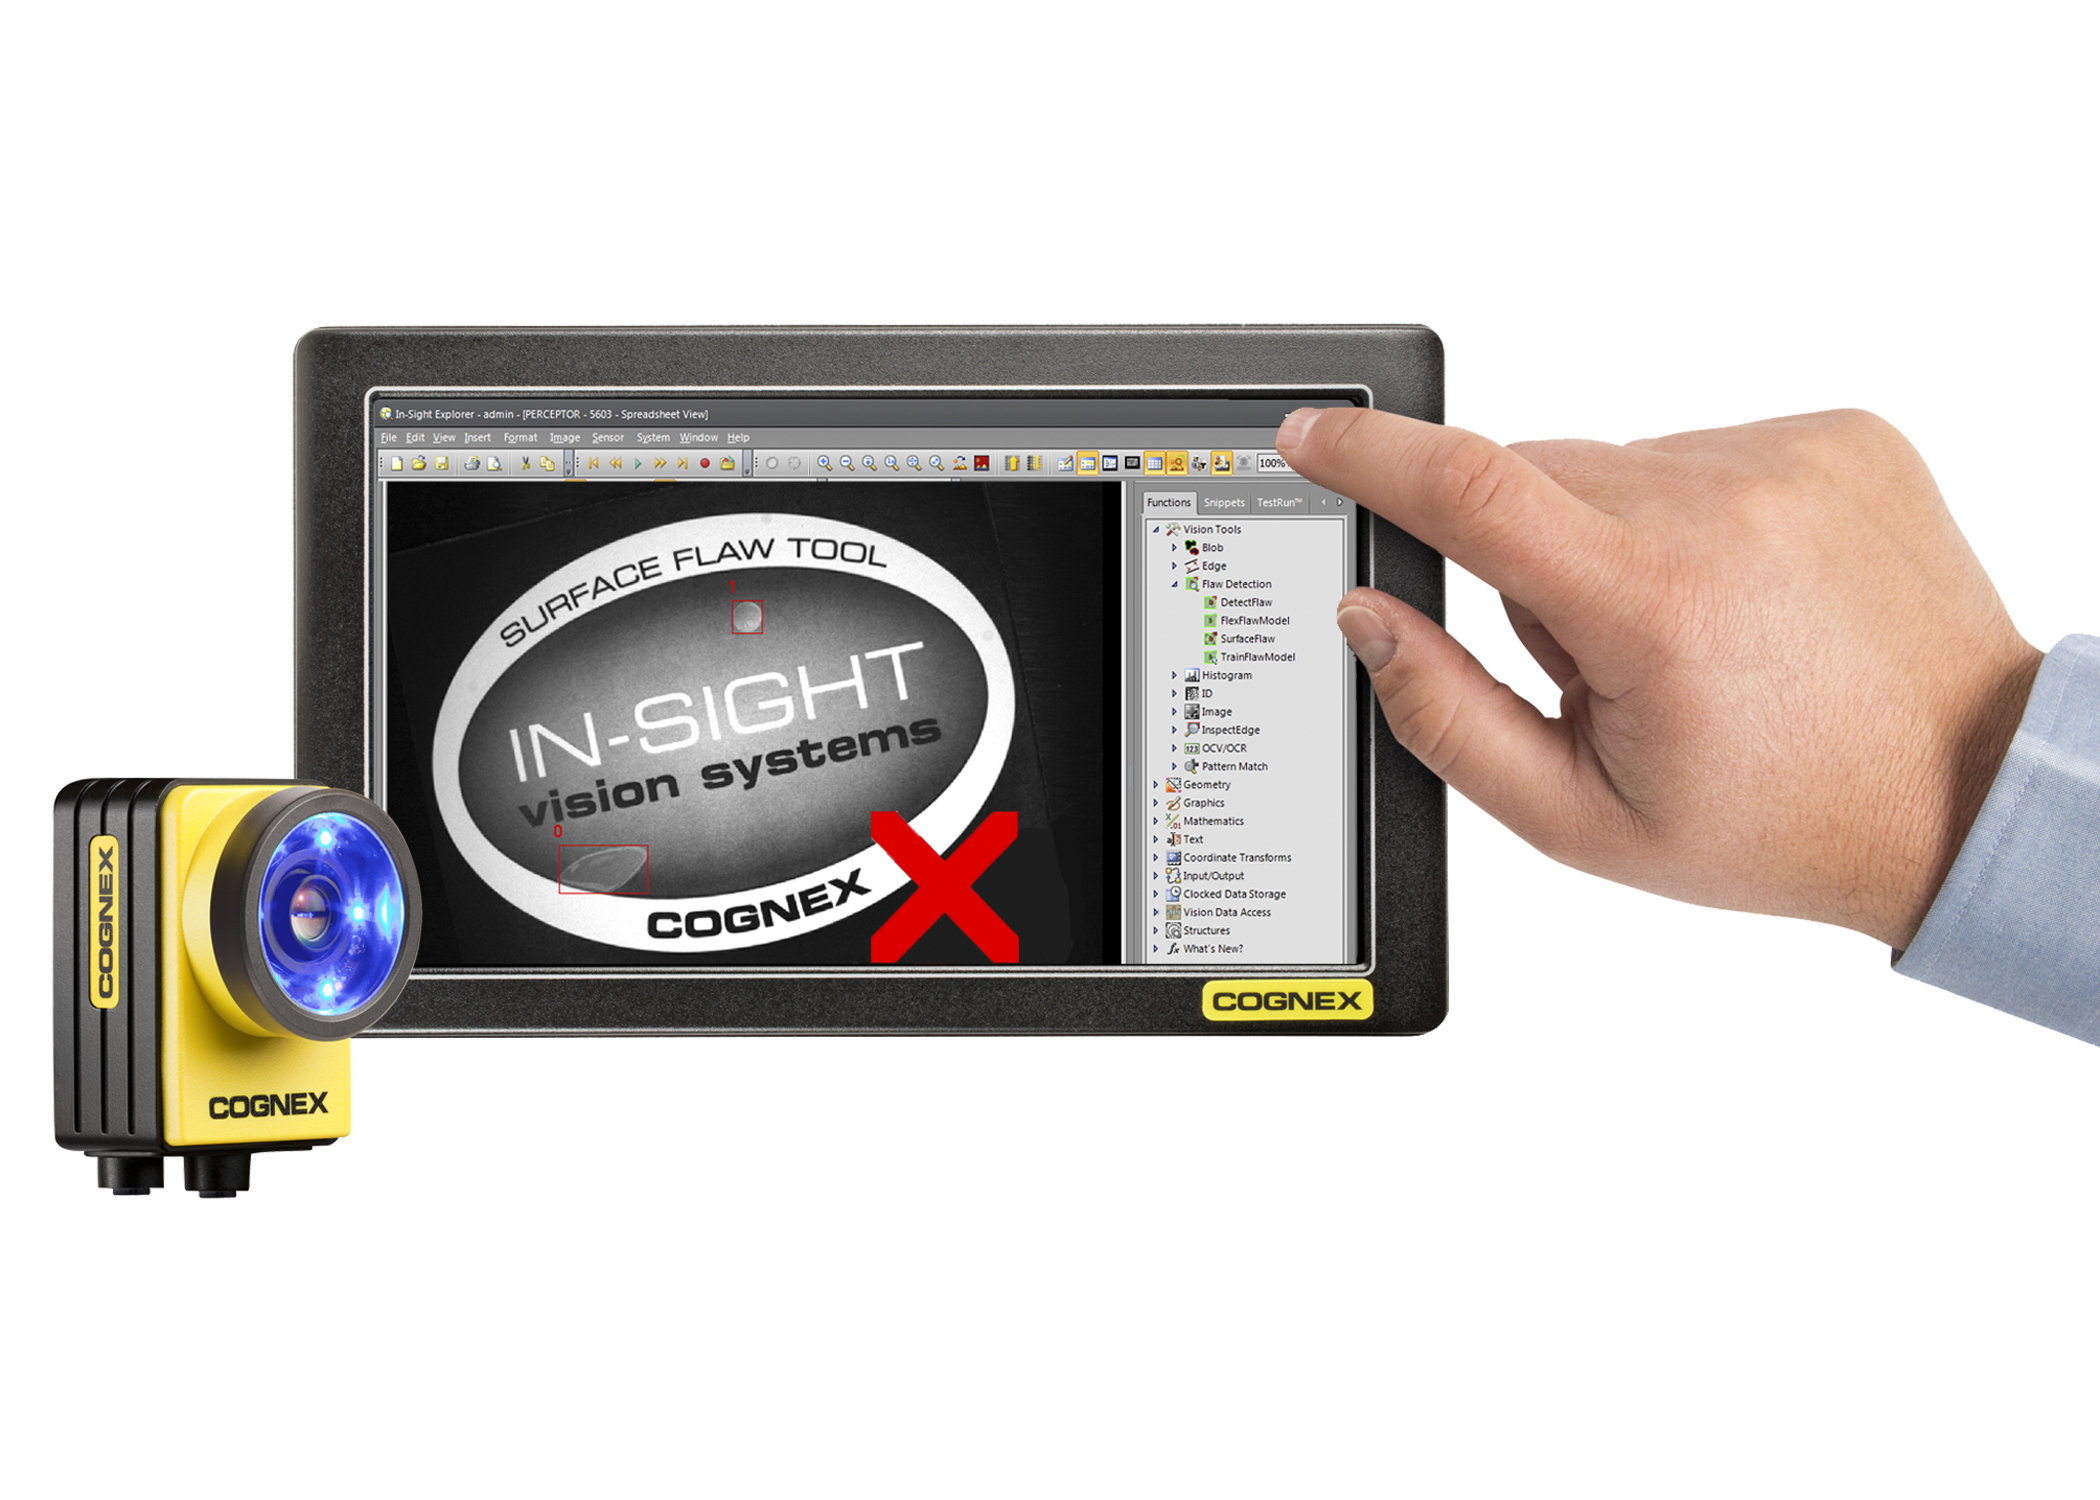 Cognex Spreadsheet Intended For New Insight Software Release Features Advanced Defect Detection